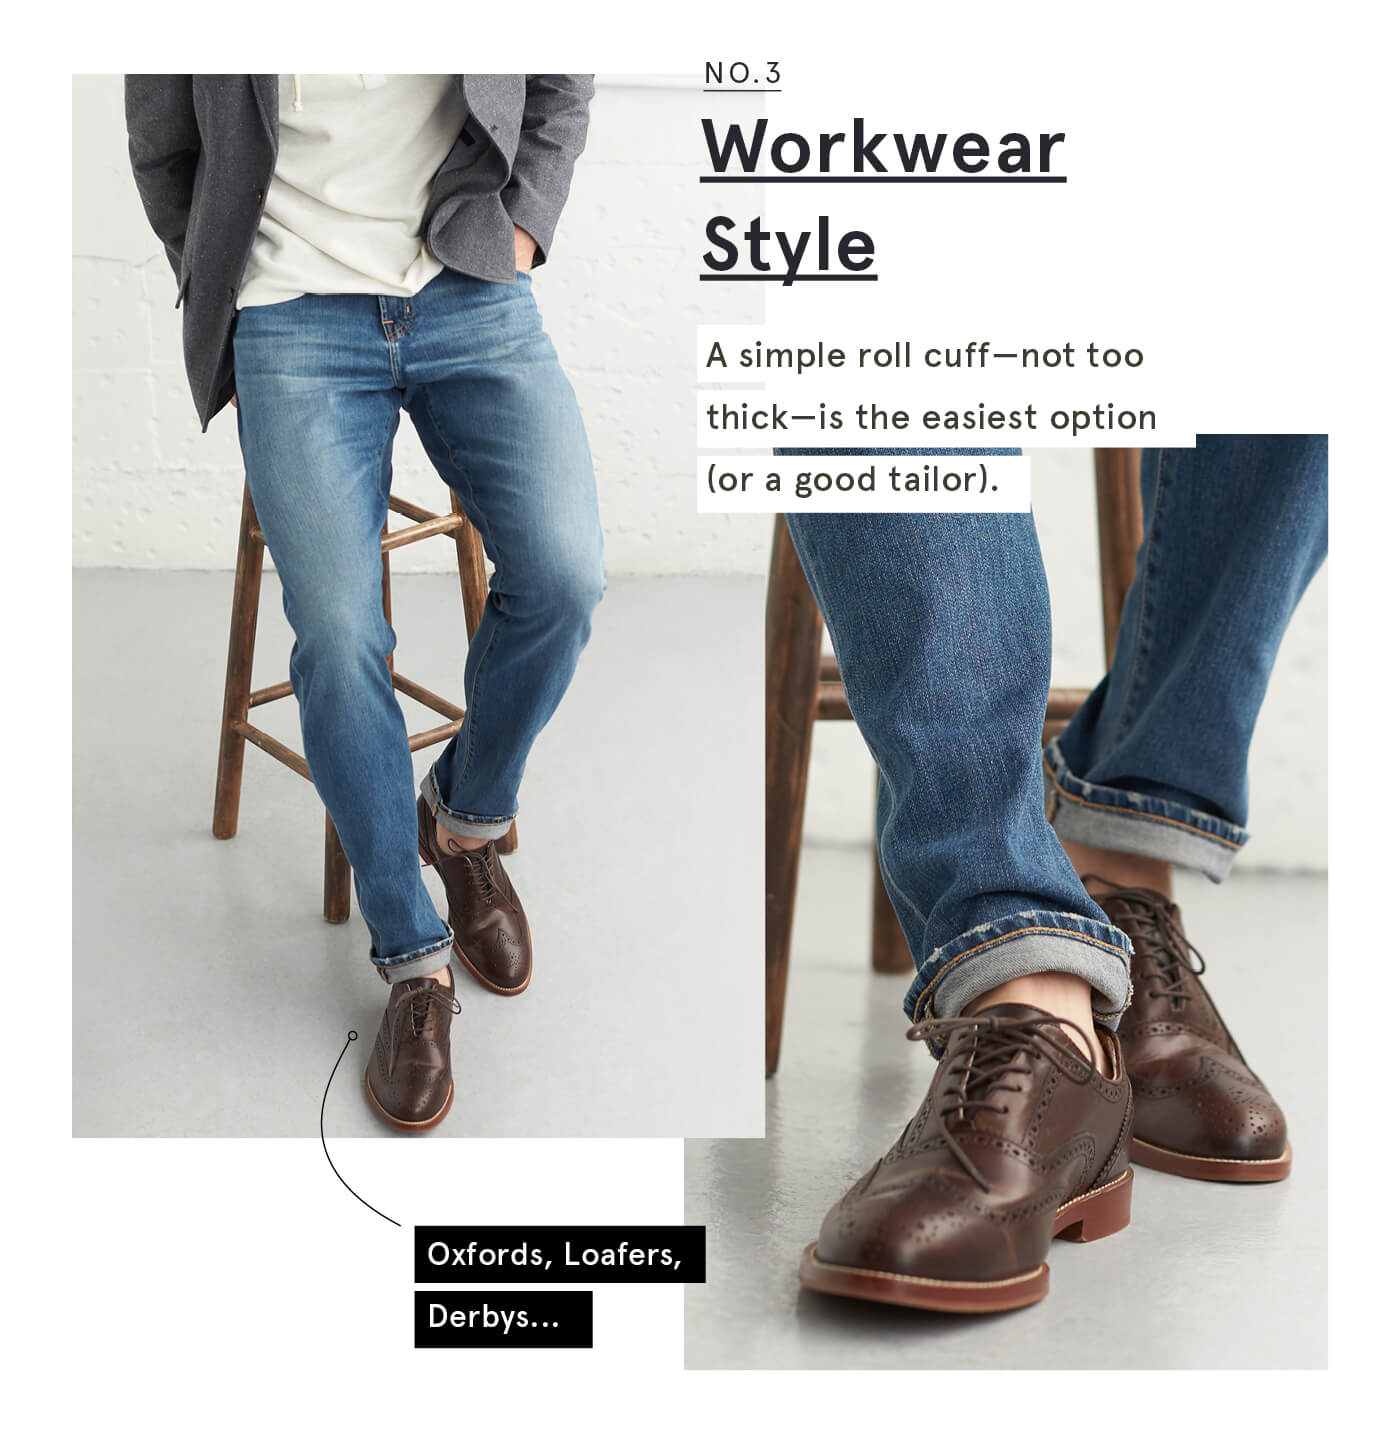 Casual Dress Shoes With Jeans